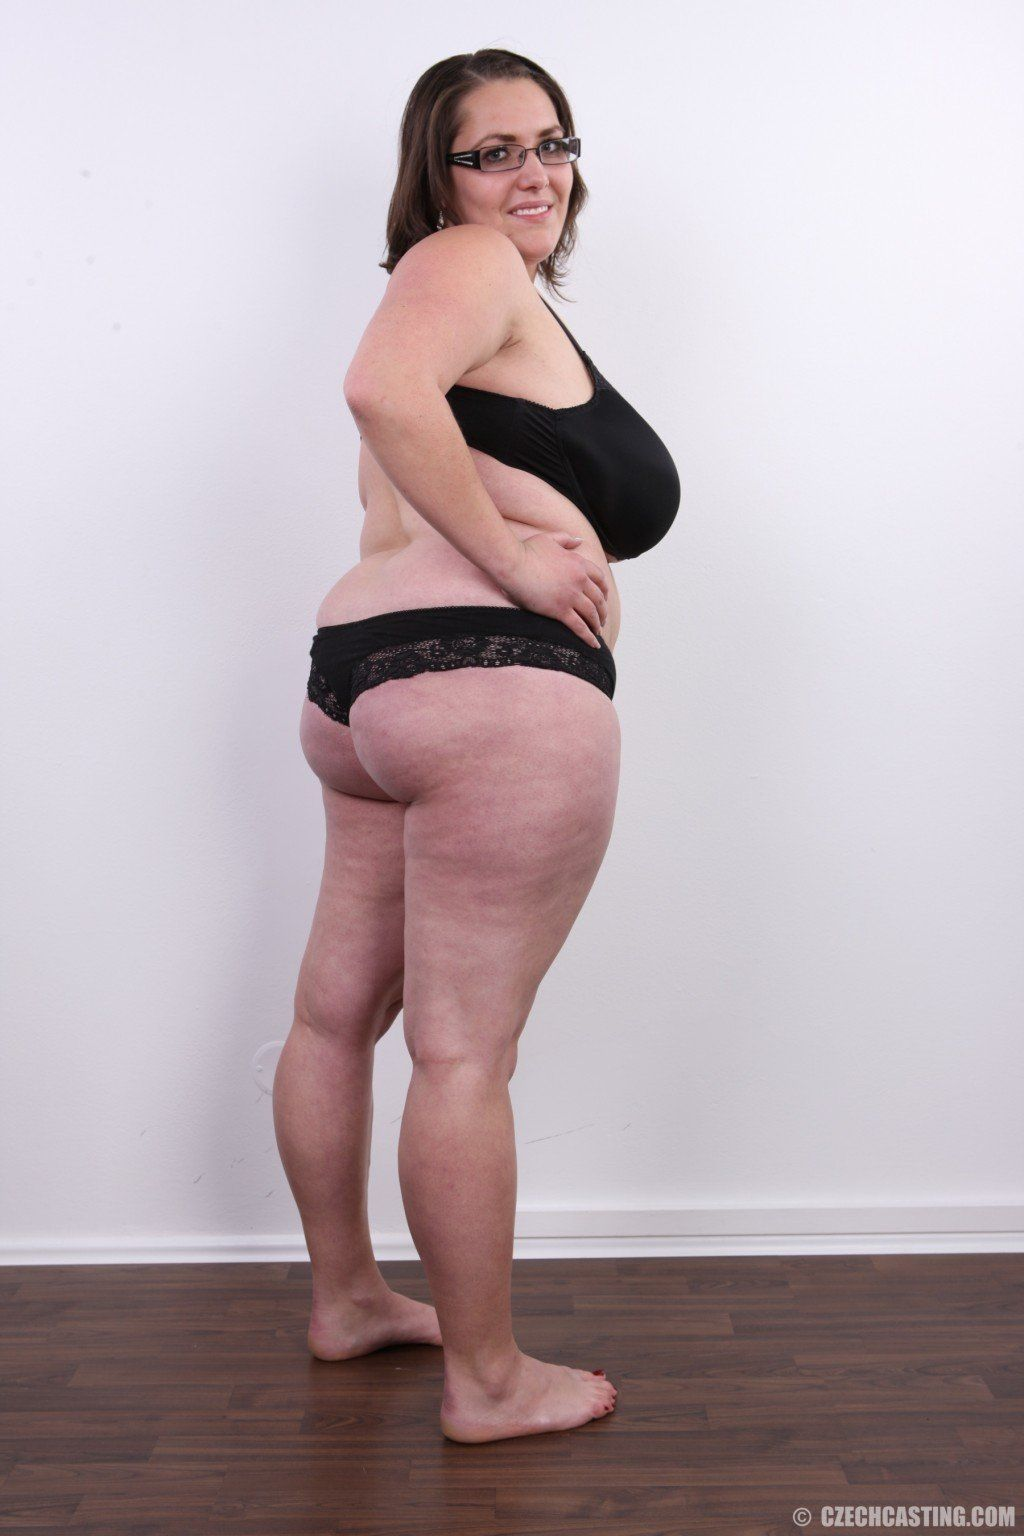 Agent 9. recommendet Double heavy bbw squash girl.